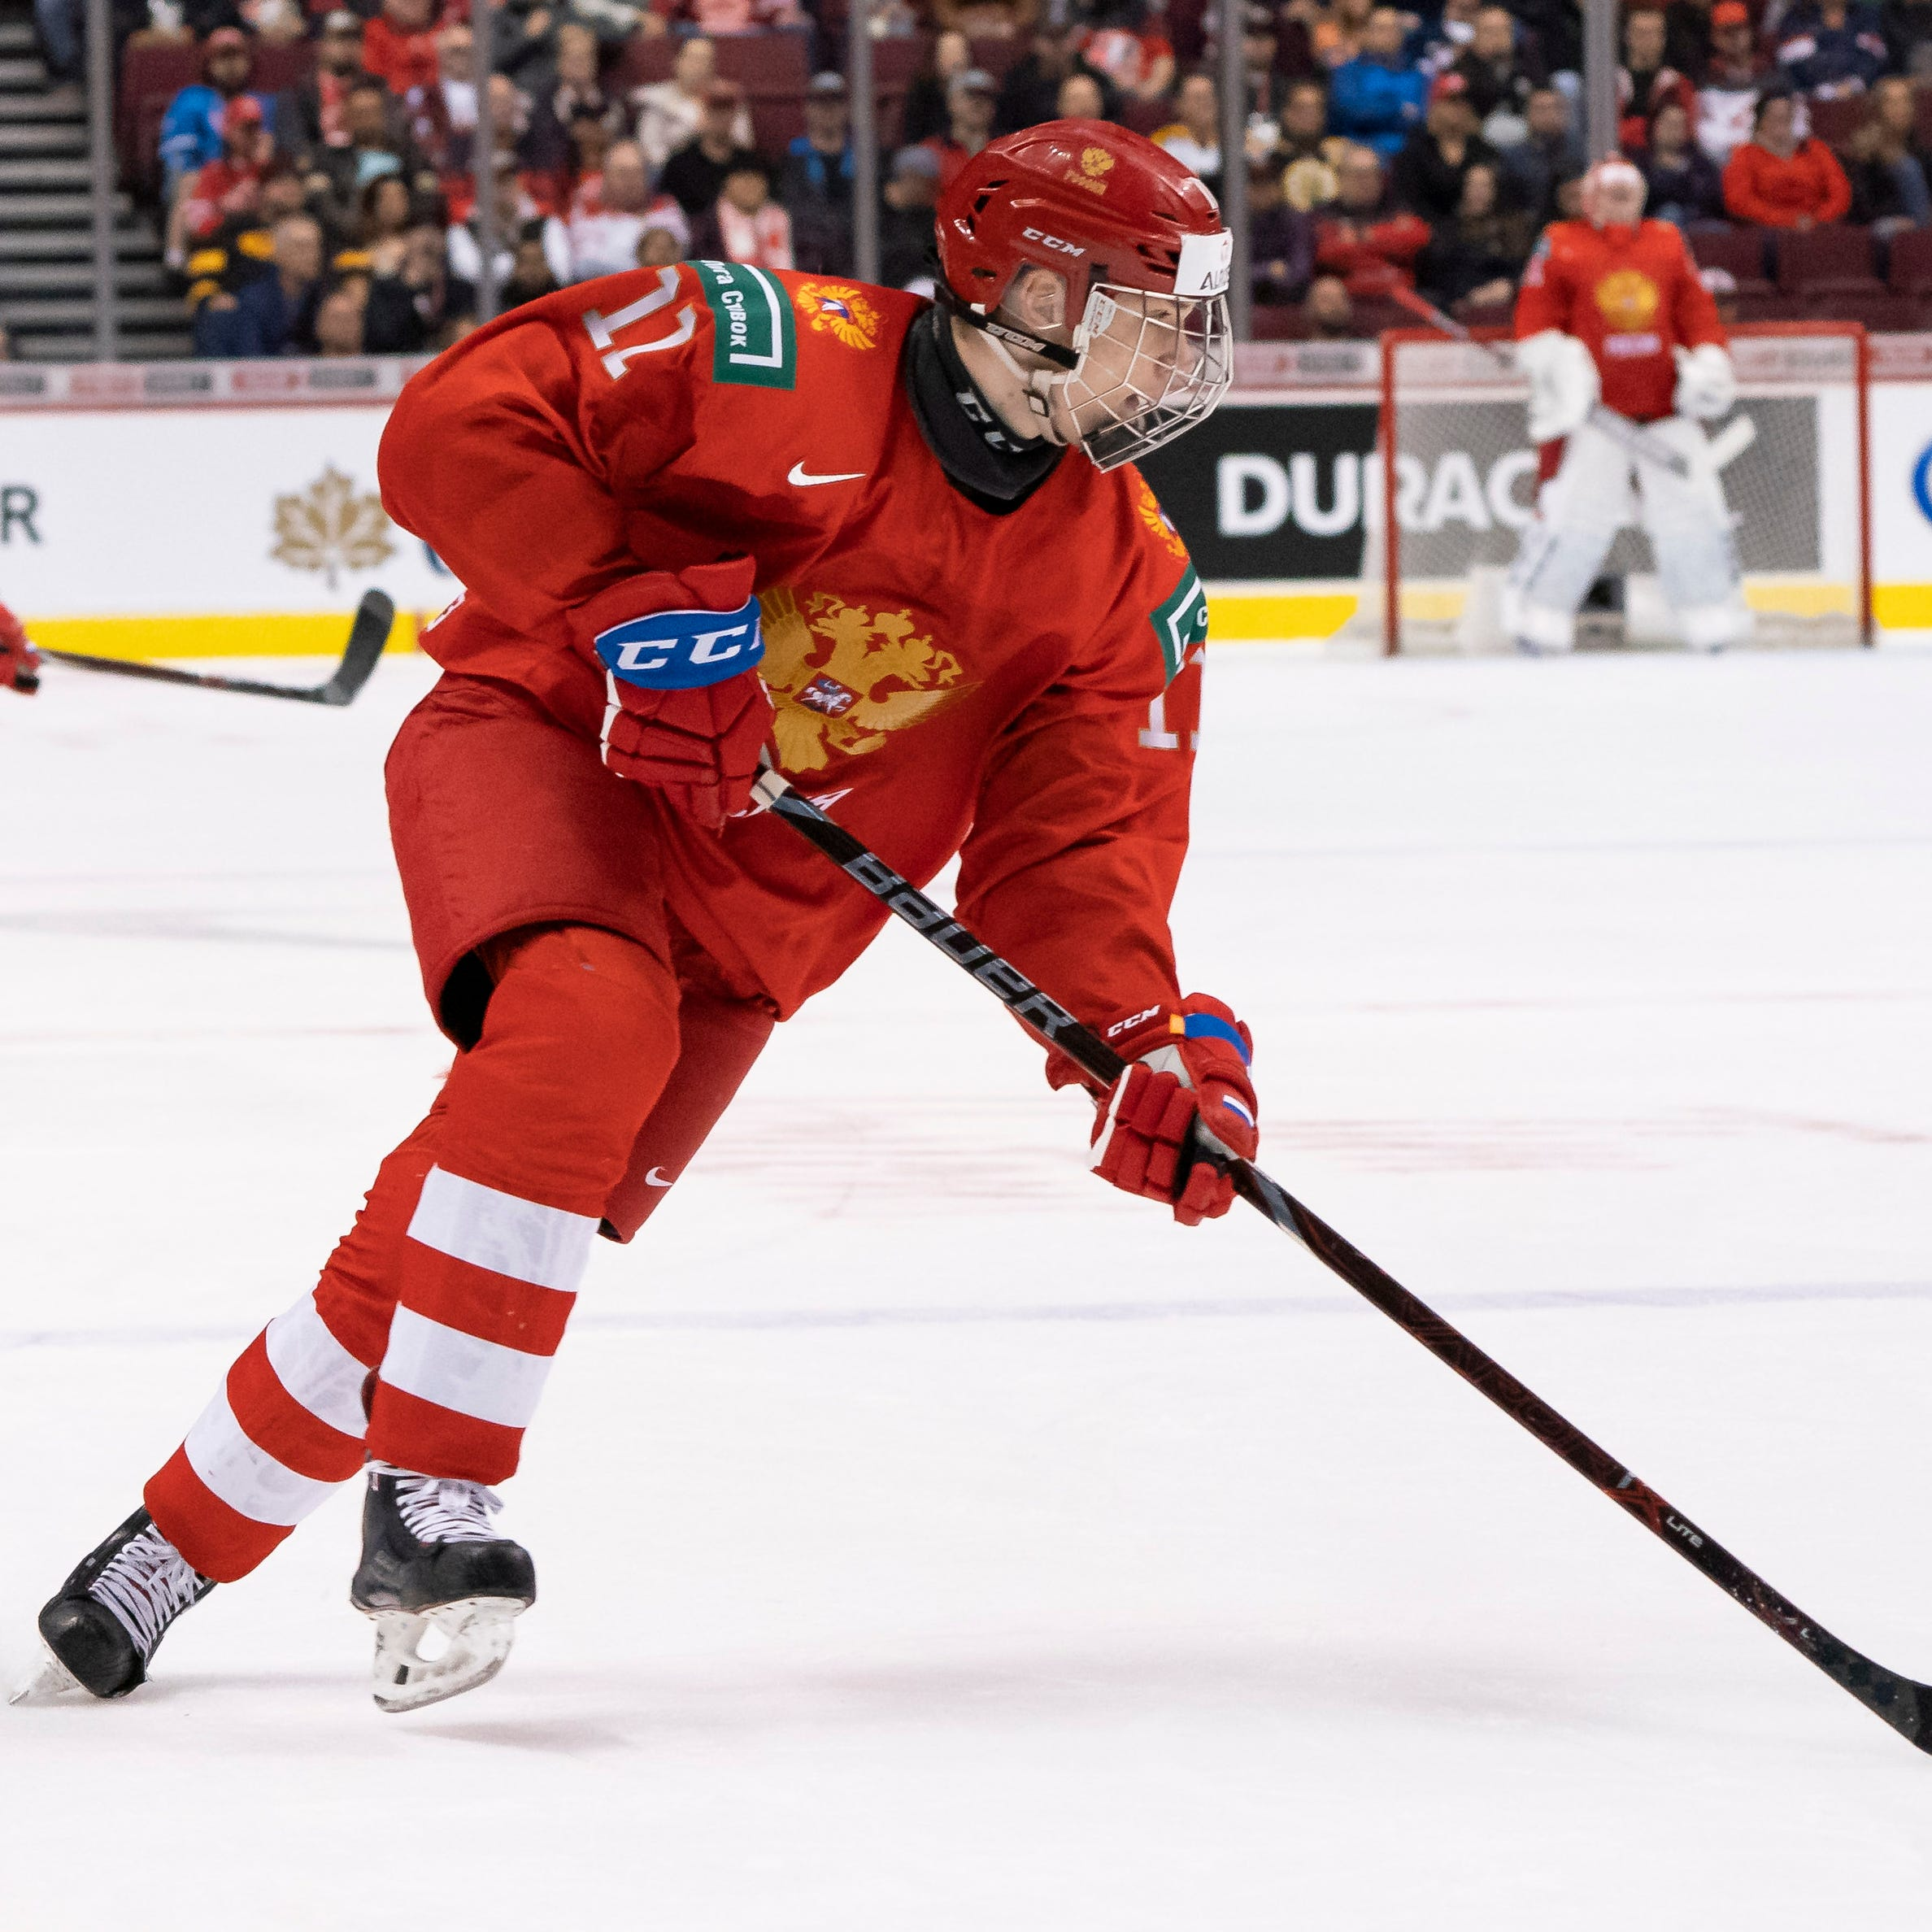 Red Wings select wing Vasili Podkolzin at No. 4 in ESPN NHL mock draft